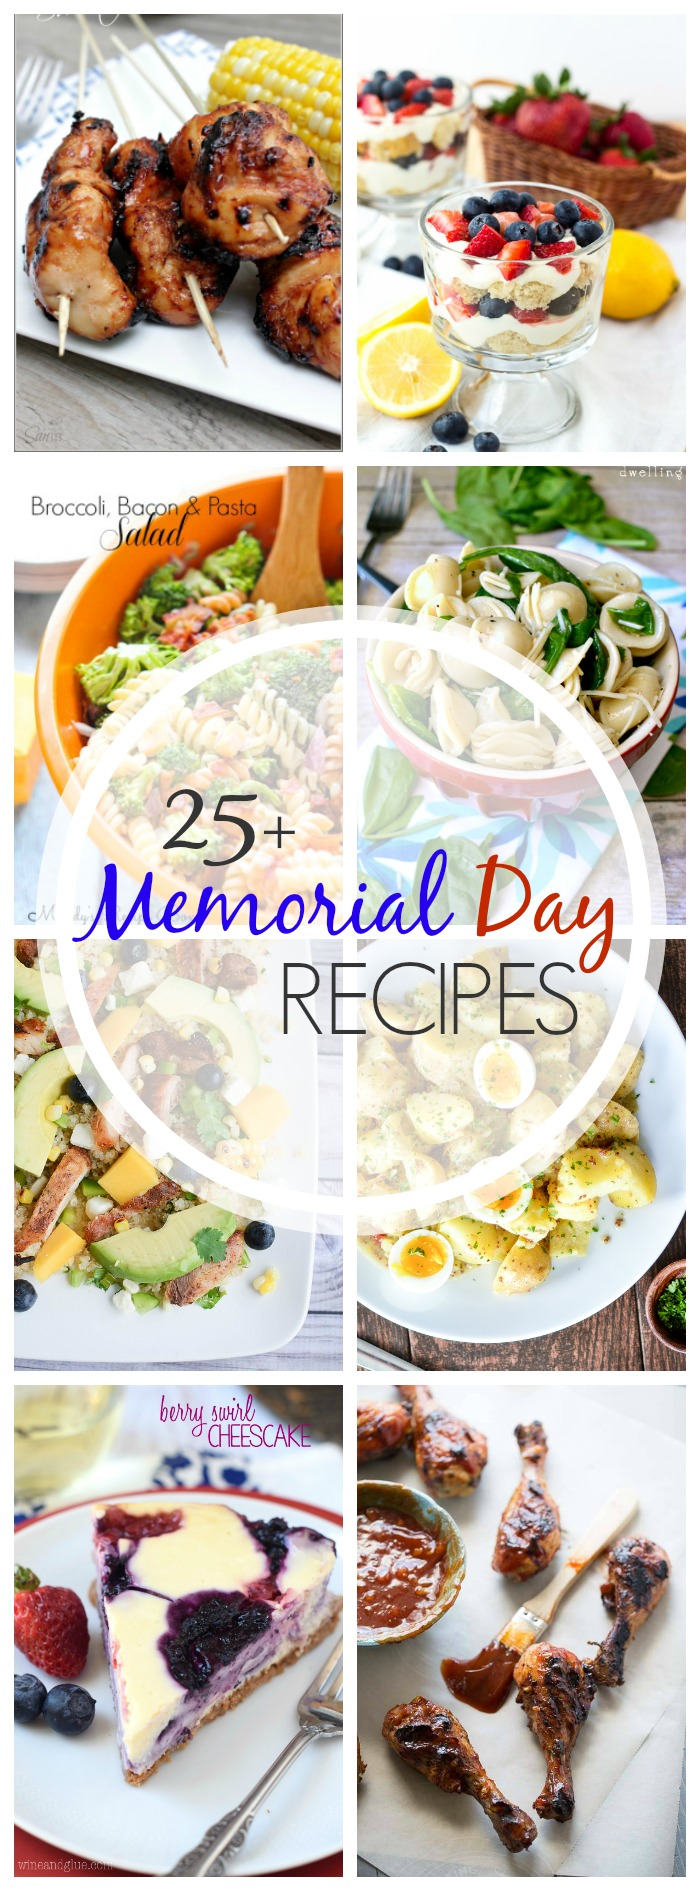 25+ Perfect Memorial Day Recipes that you'll want to make all summer long! From savory grill recipes to tasty summer desserts, we have you covered! | The Love Nerds